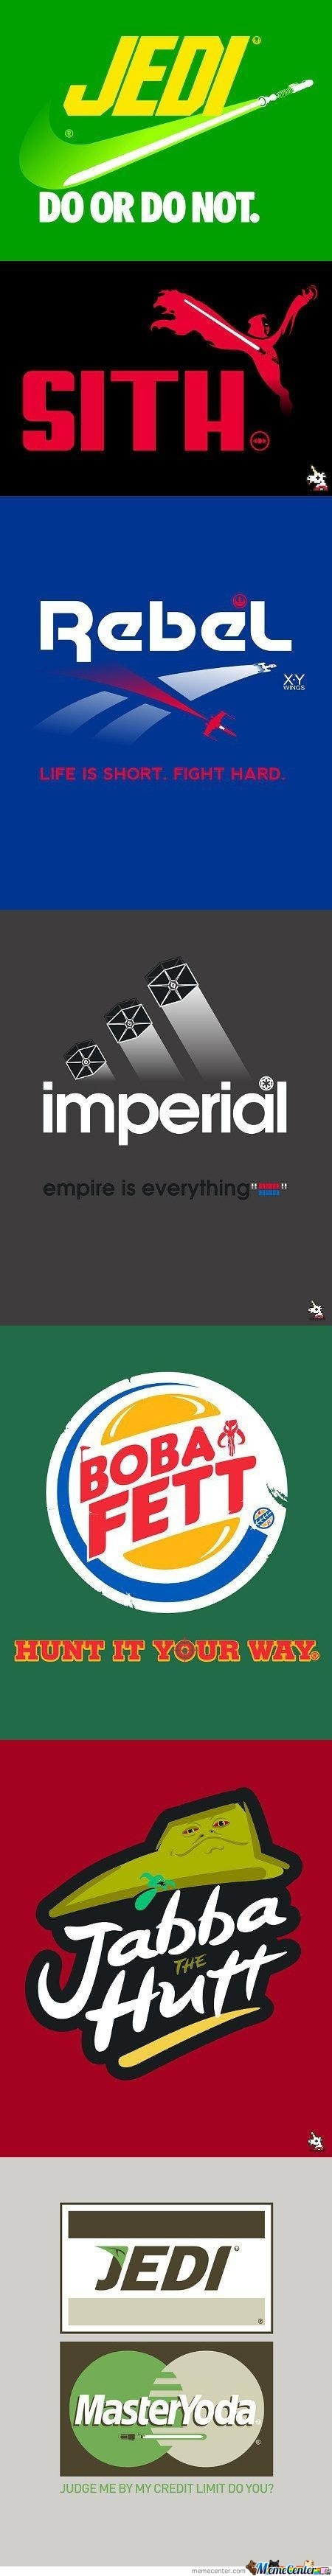 .Geek, Like A Boss, Logo, Awesome, Funny Pictures, Credit Cards, Star Wars, Stars Wars, Starwars